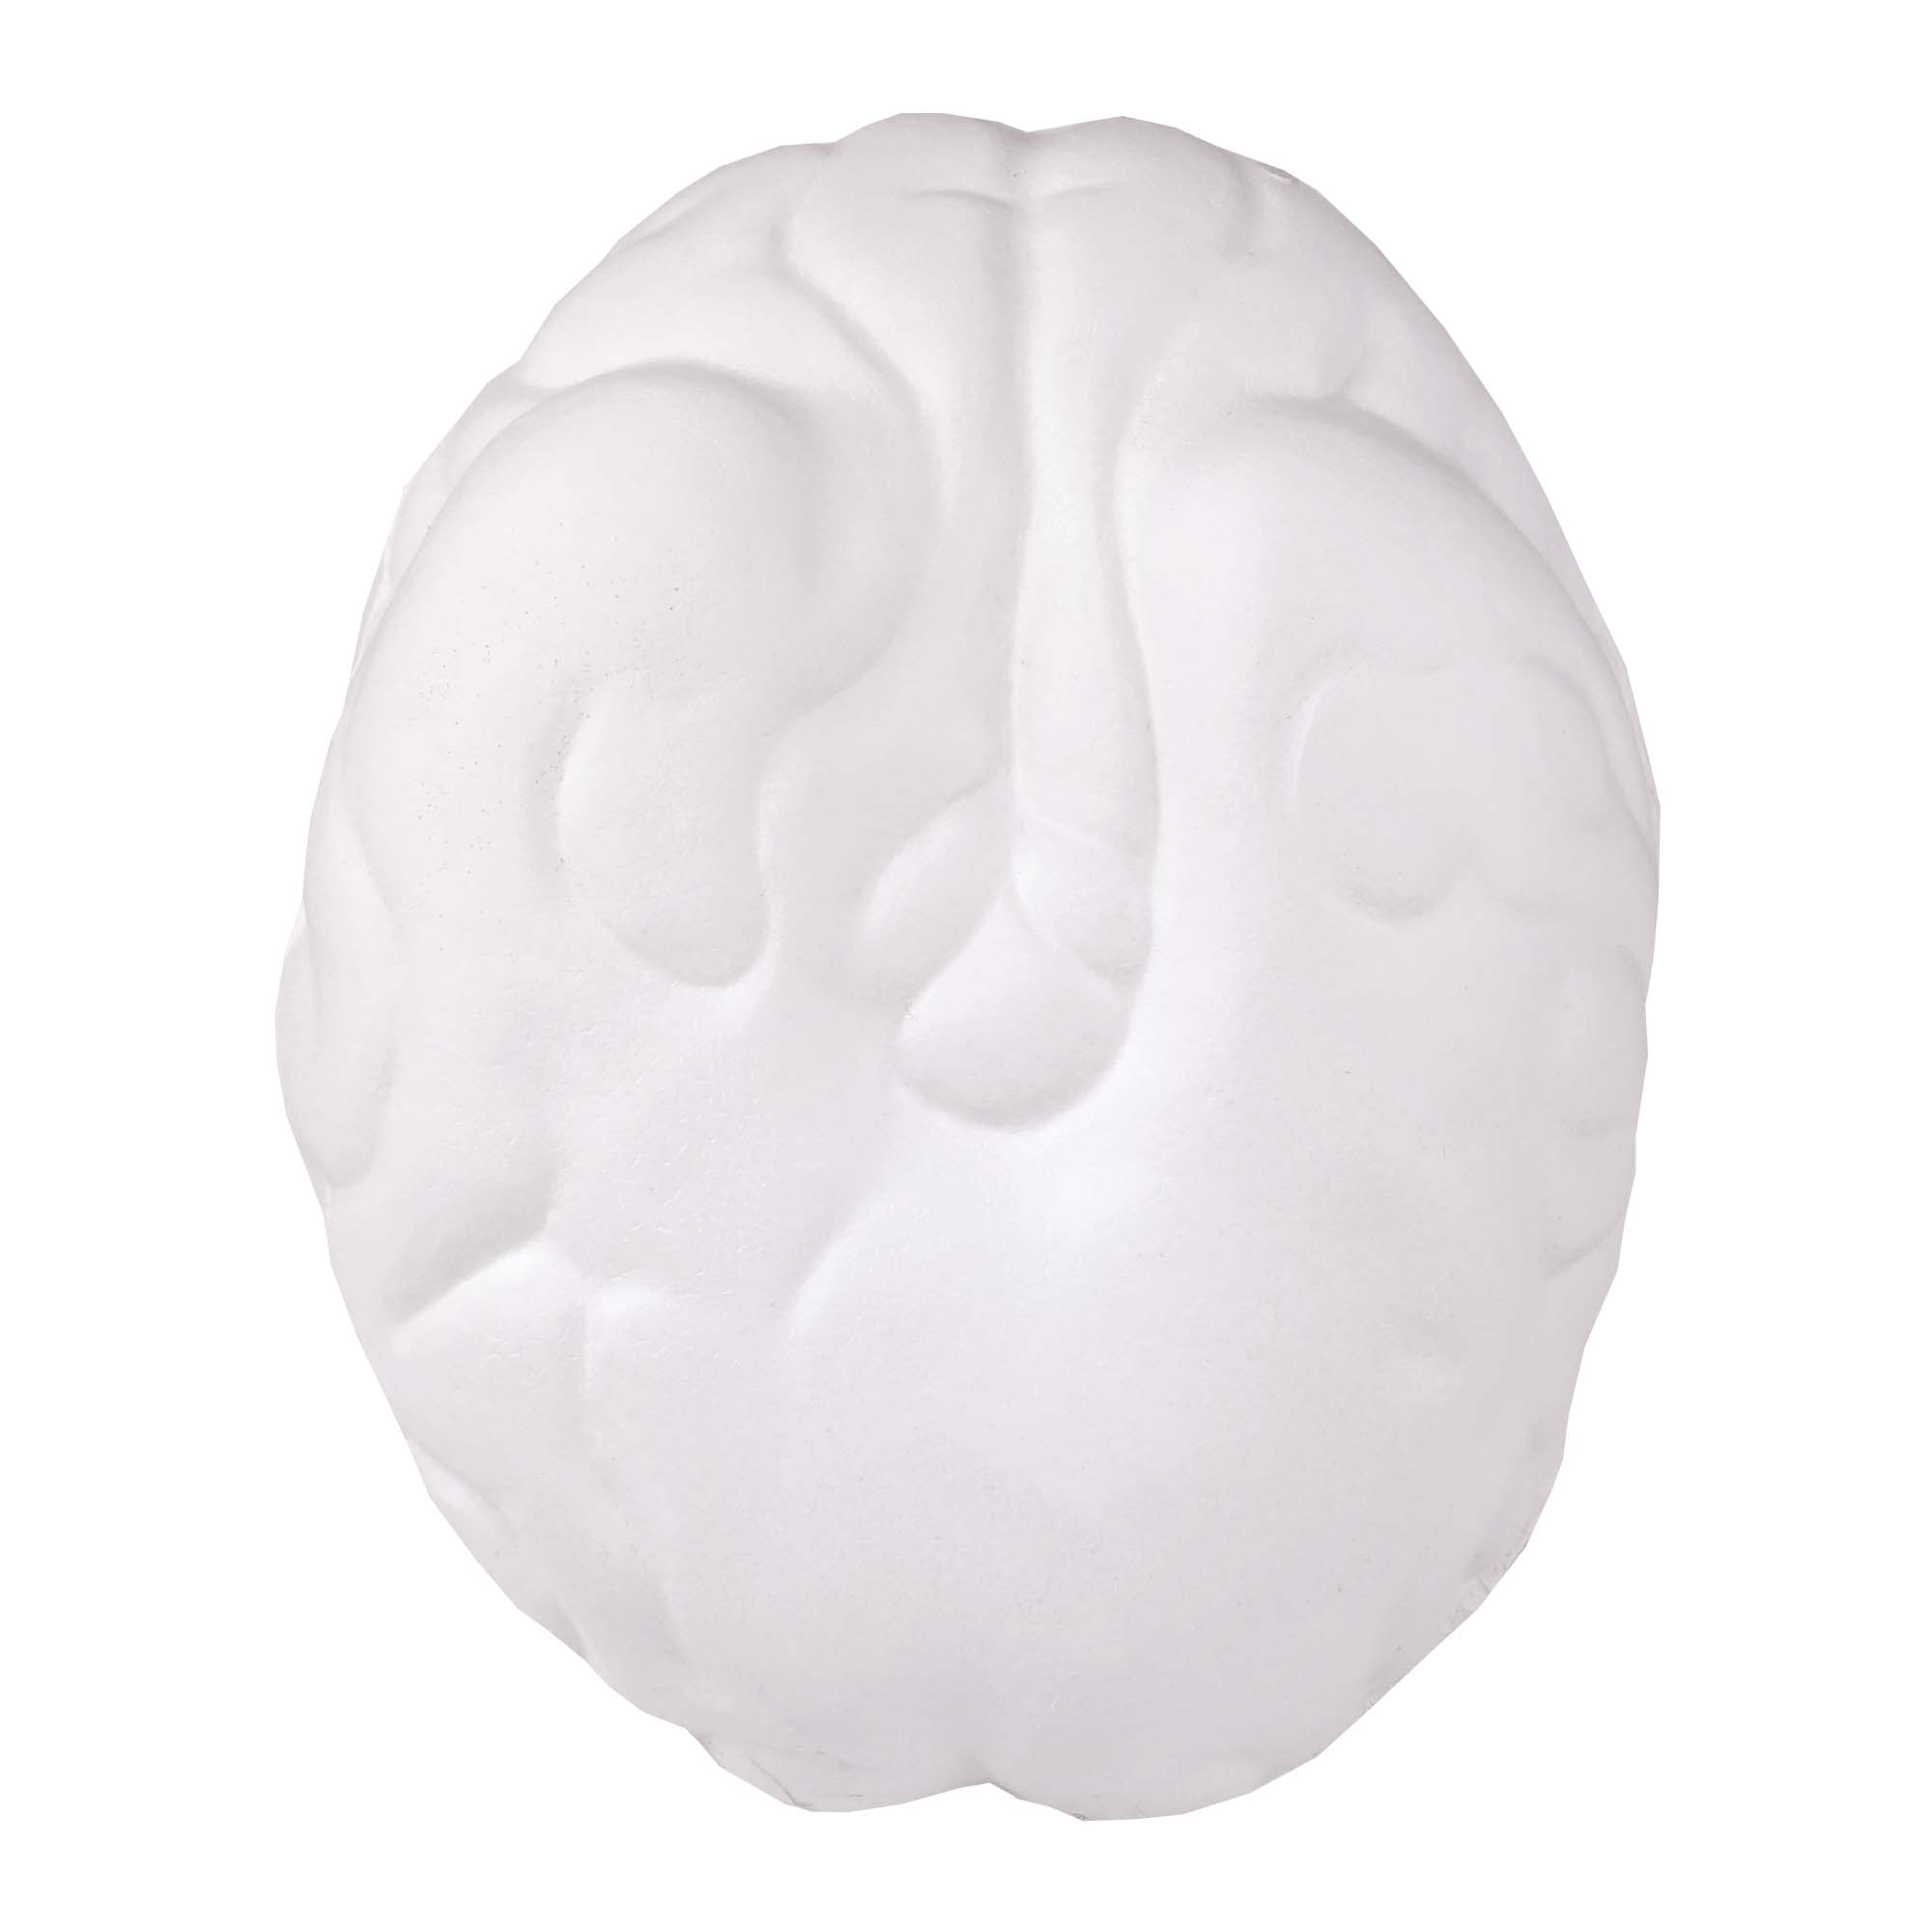 Branded Brain Large Stress Toy